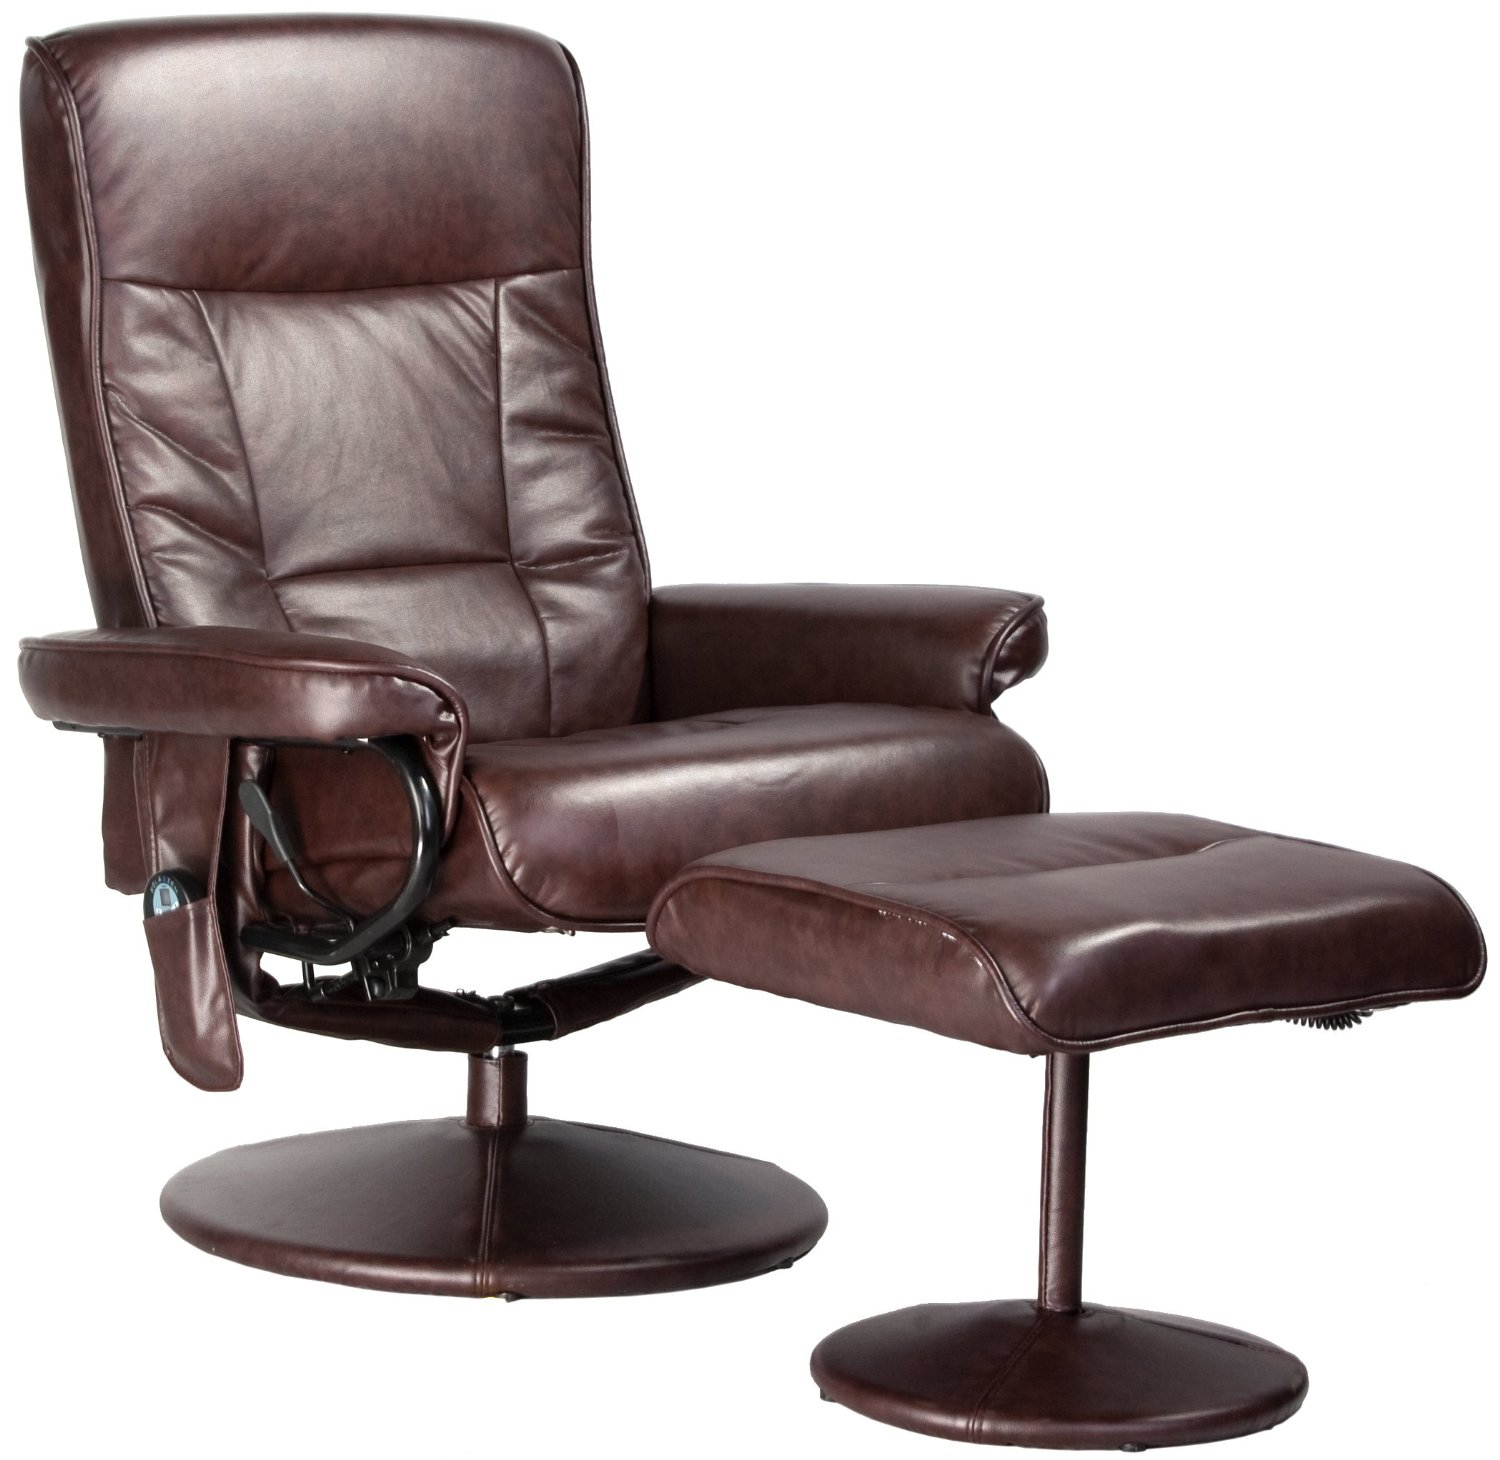 Top 10 Best cheap Massage Chairs under 500 dollars